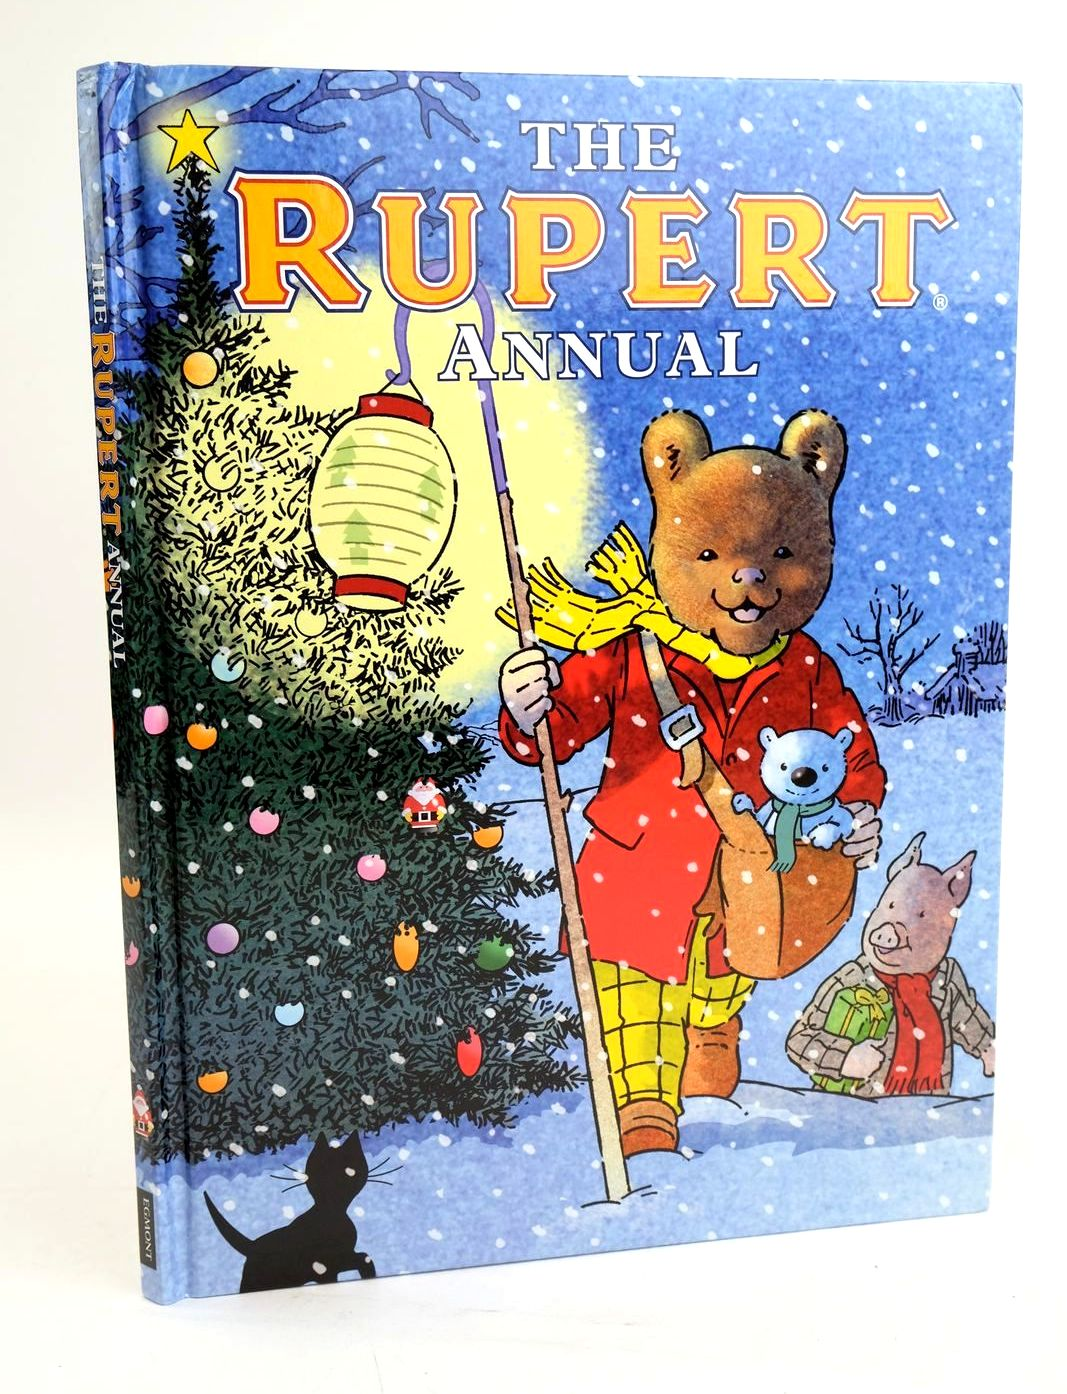 Photo of RUPERT ANNUAL 2014 written by Trotter, Stuart illustrated by Trotter, Stuart Cubie, Alex Harrold, John published by Egmont Uk Limited (STOCK CODE: 1319471)  for sale by Stella & Rose's Books